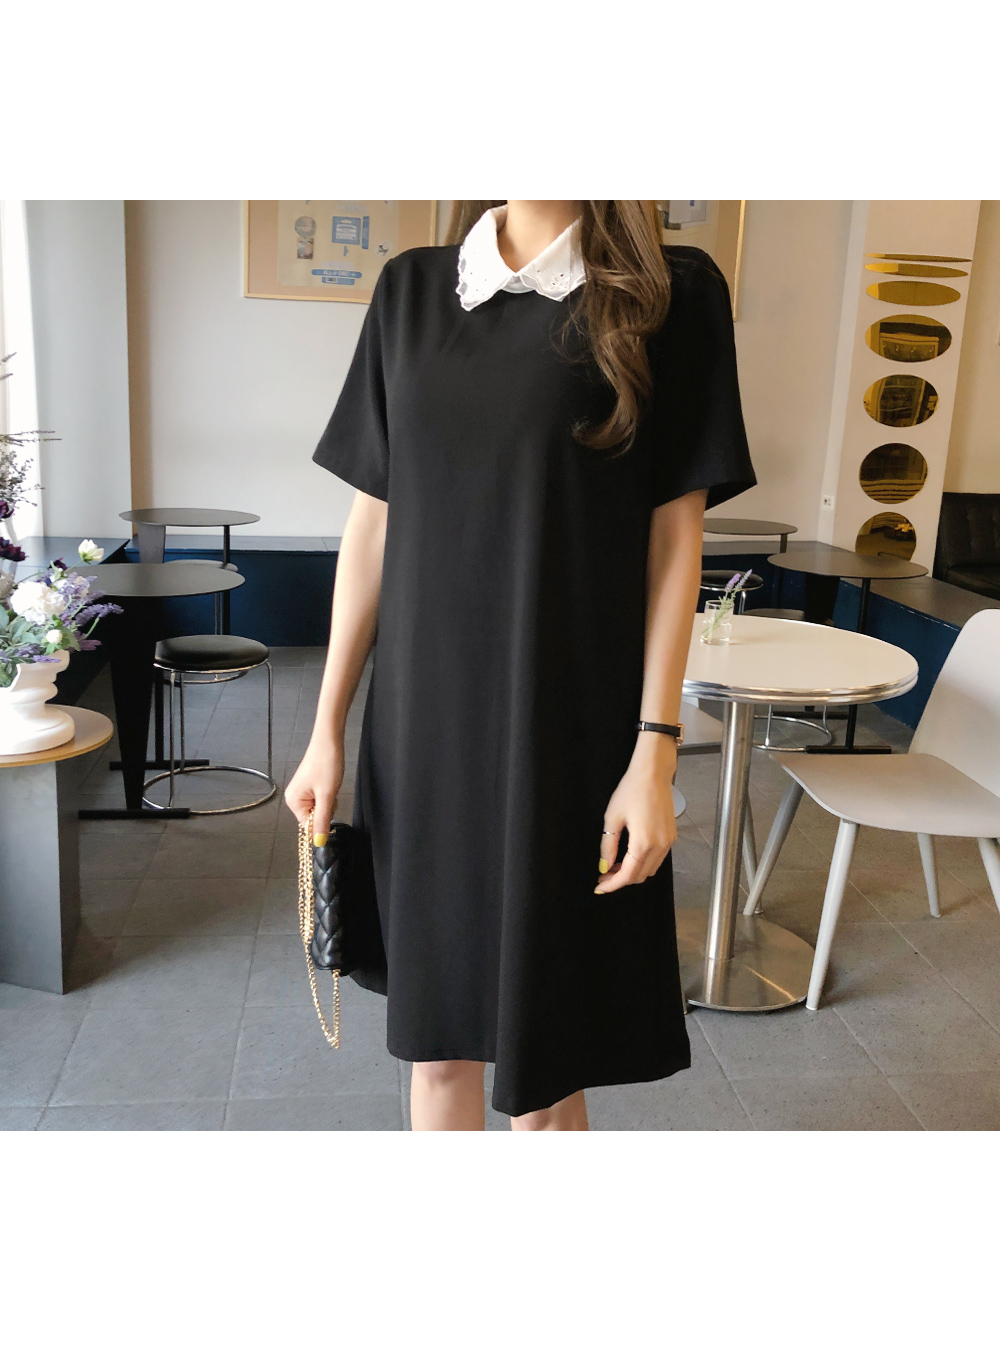 Jude lace collar dress